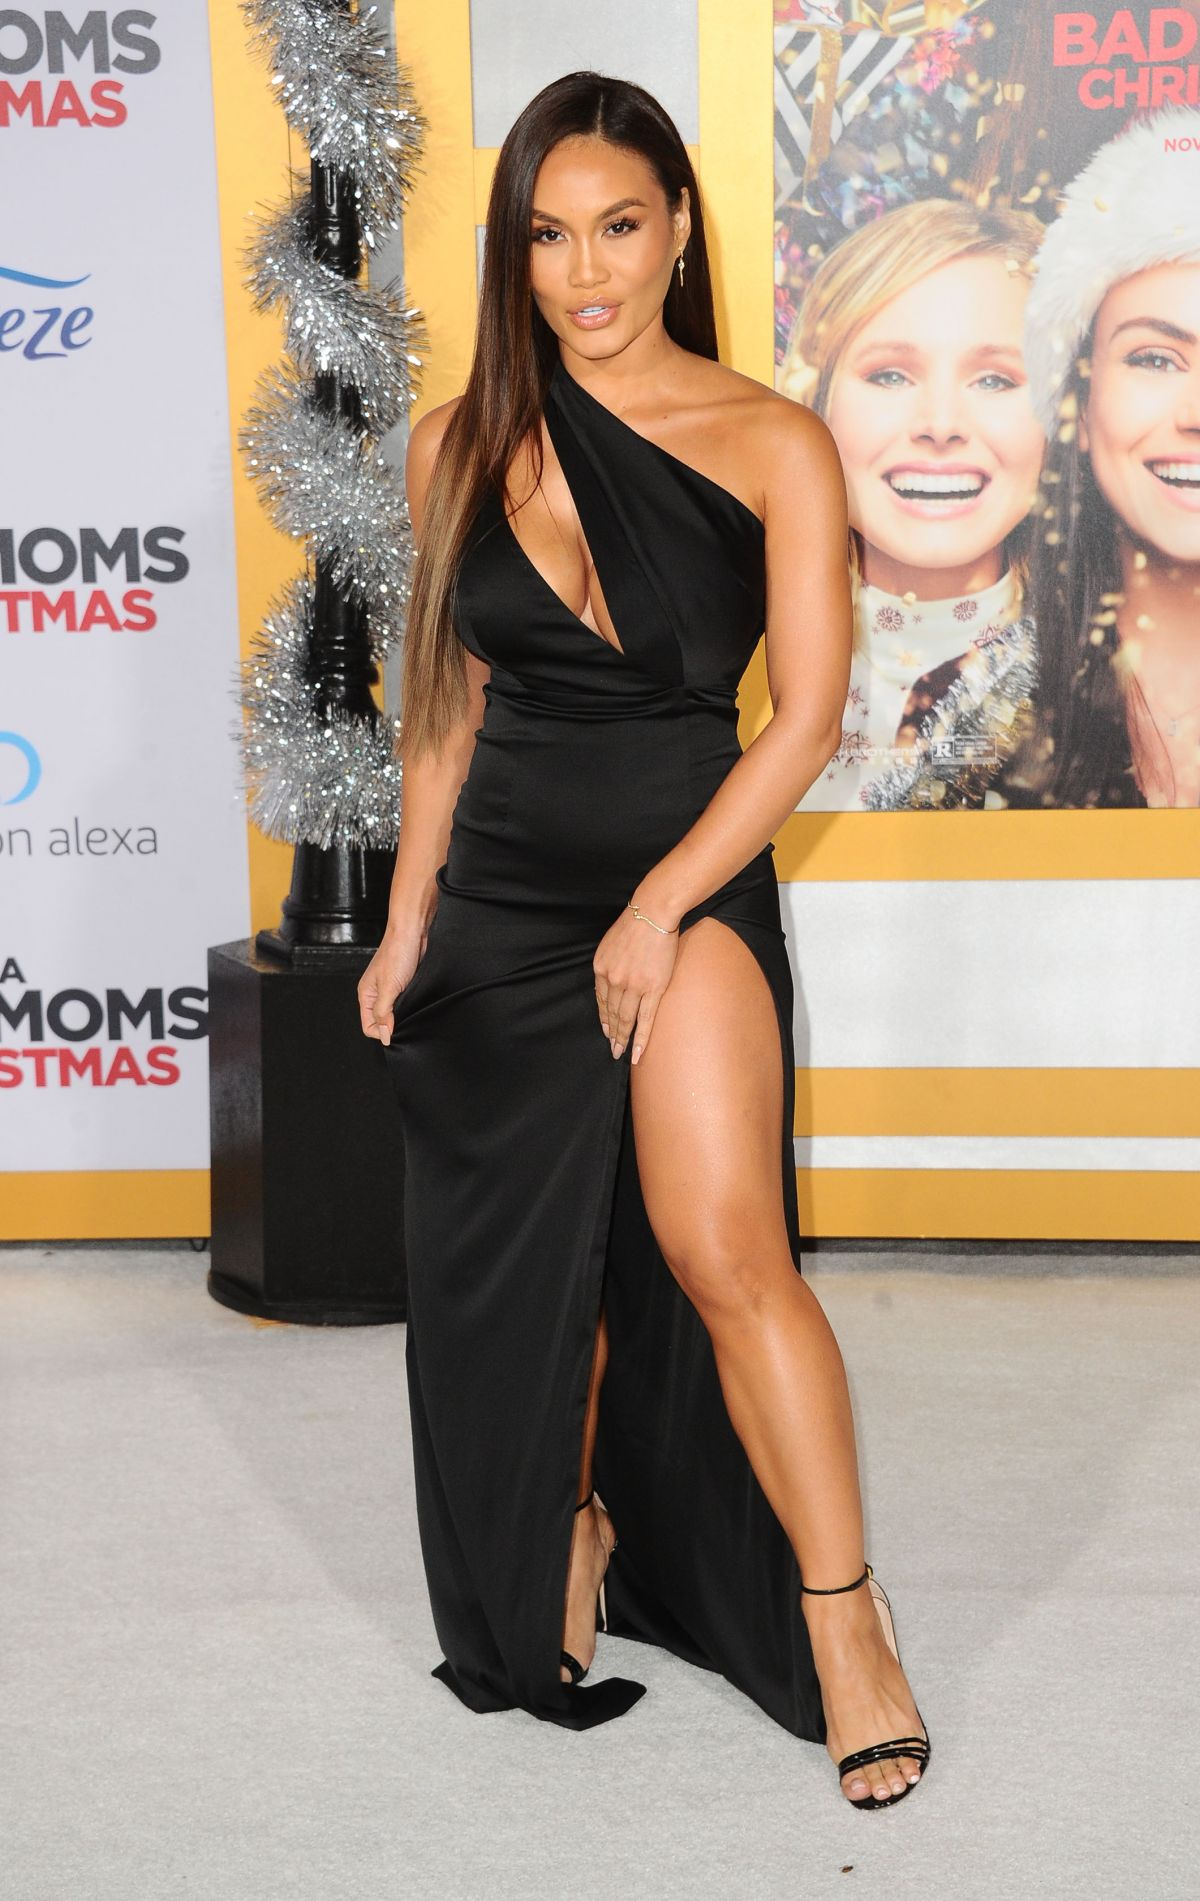 A Bad Moms Christmas 2017.Daphne Joy At A Bad Moms Christmas Premiere In Westwood 10